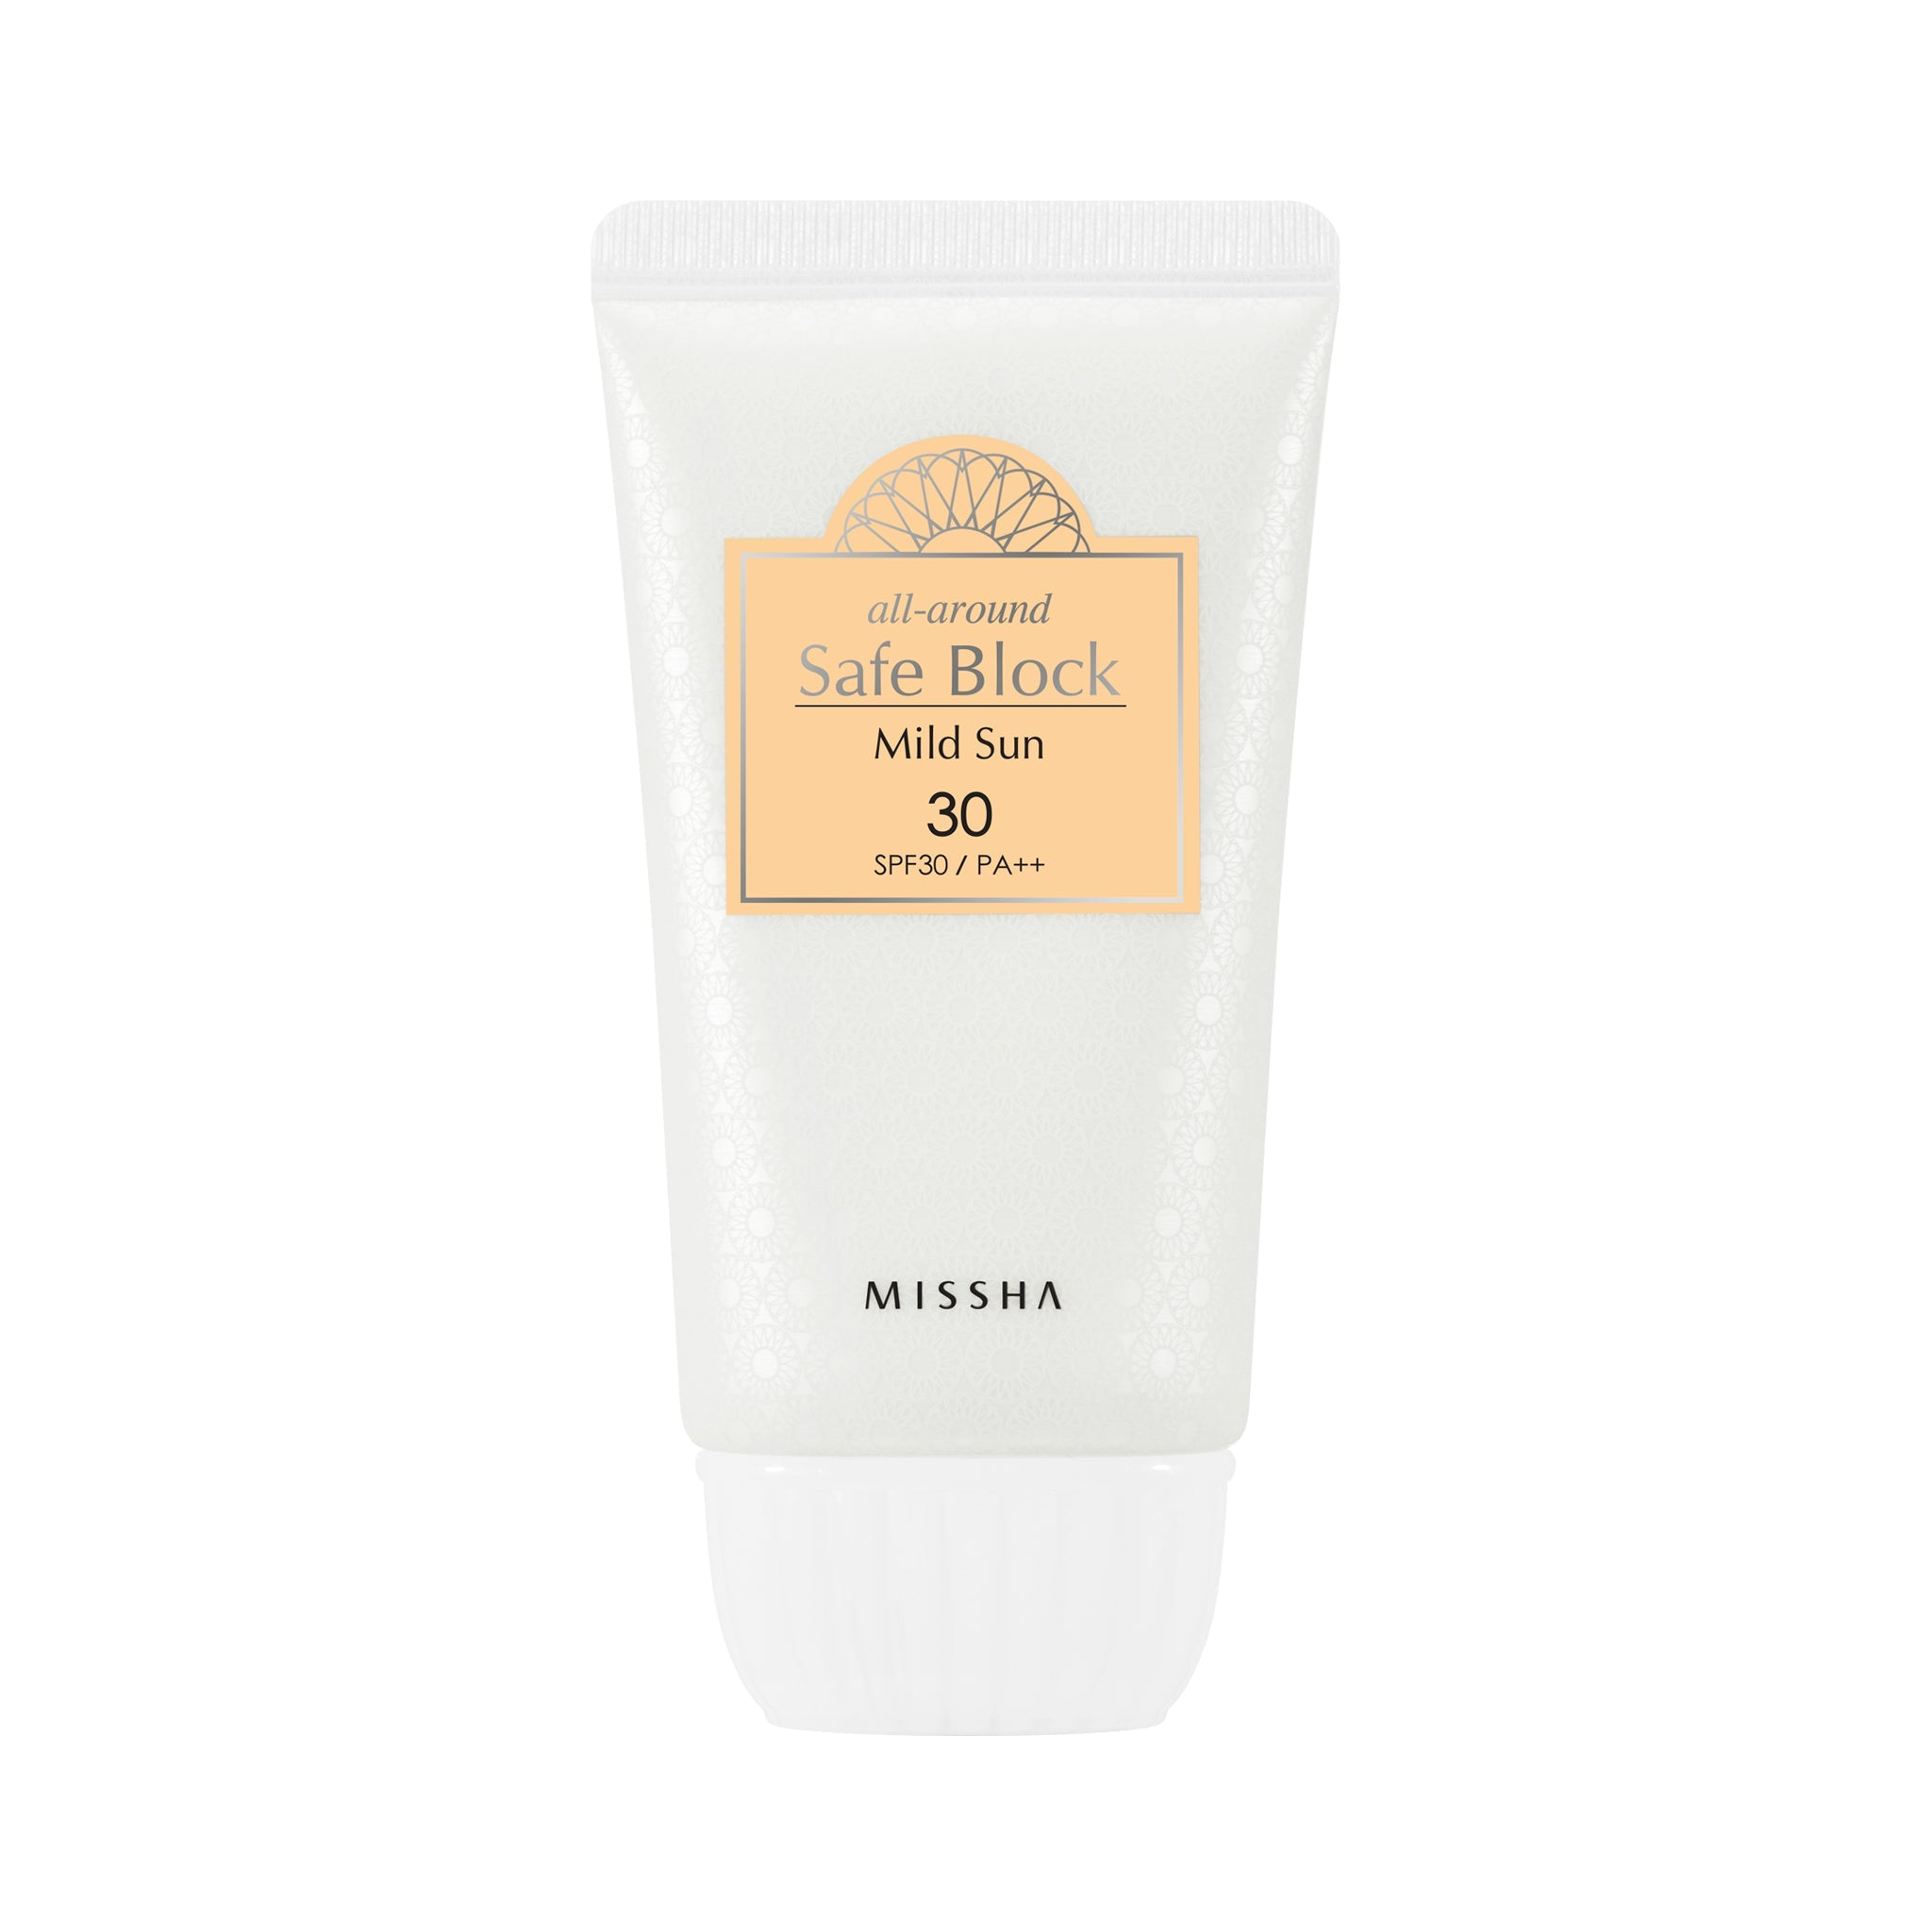 ALL AROUND SAFE BLOCK MILD SUN - MISSHA